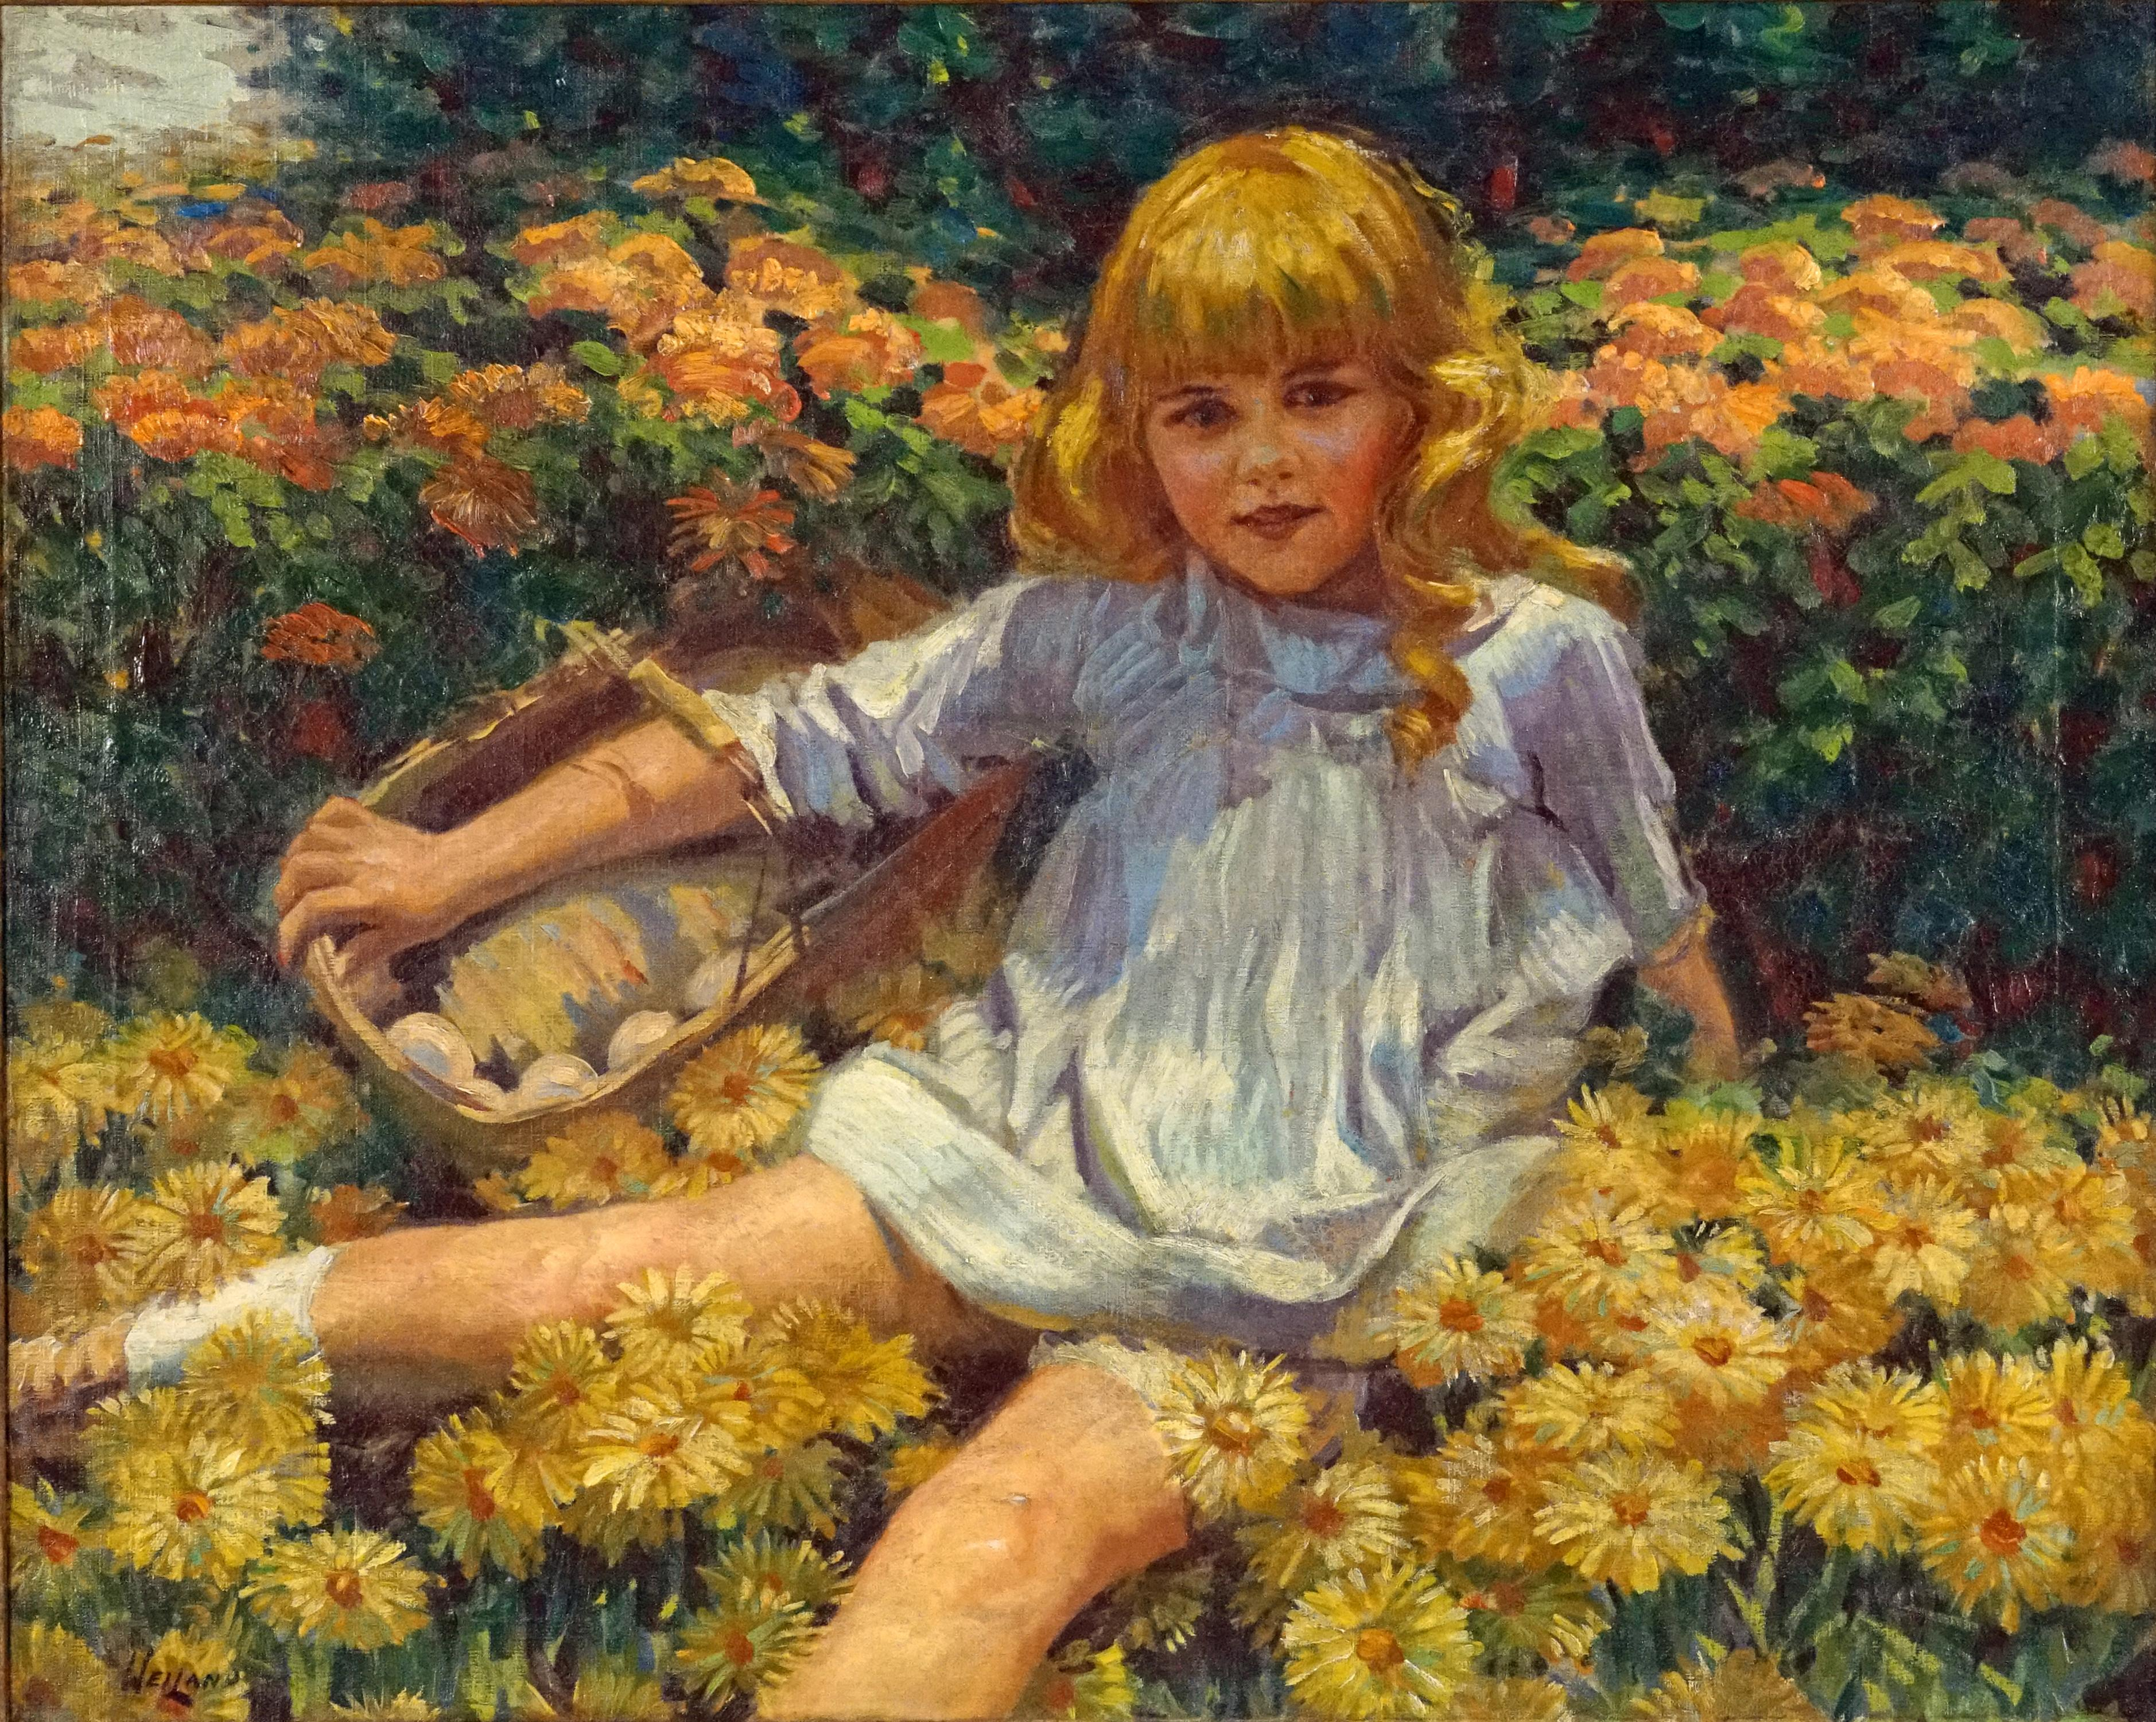 James George Weiland. Young Girl Resting in a Bed of Flowers